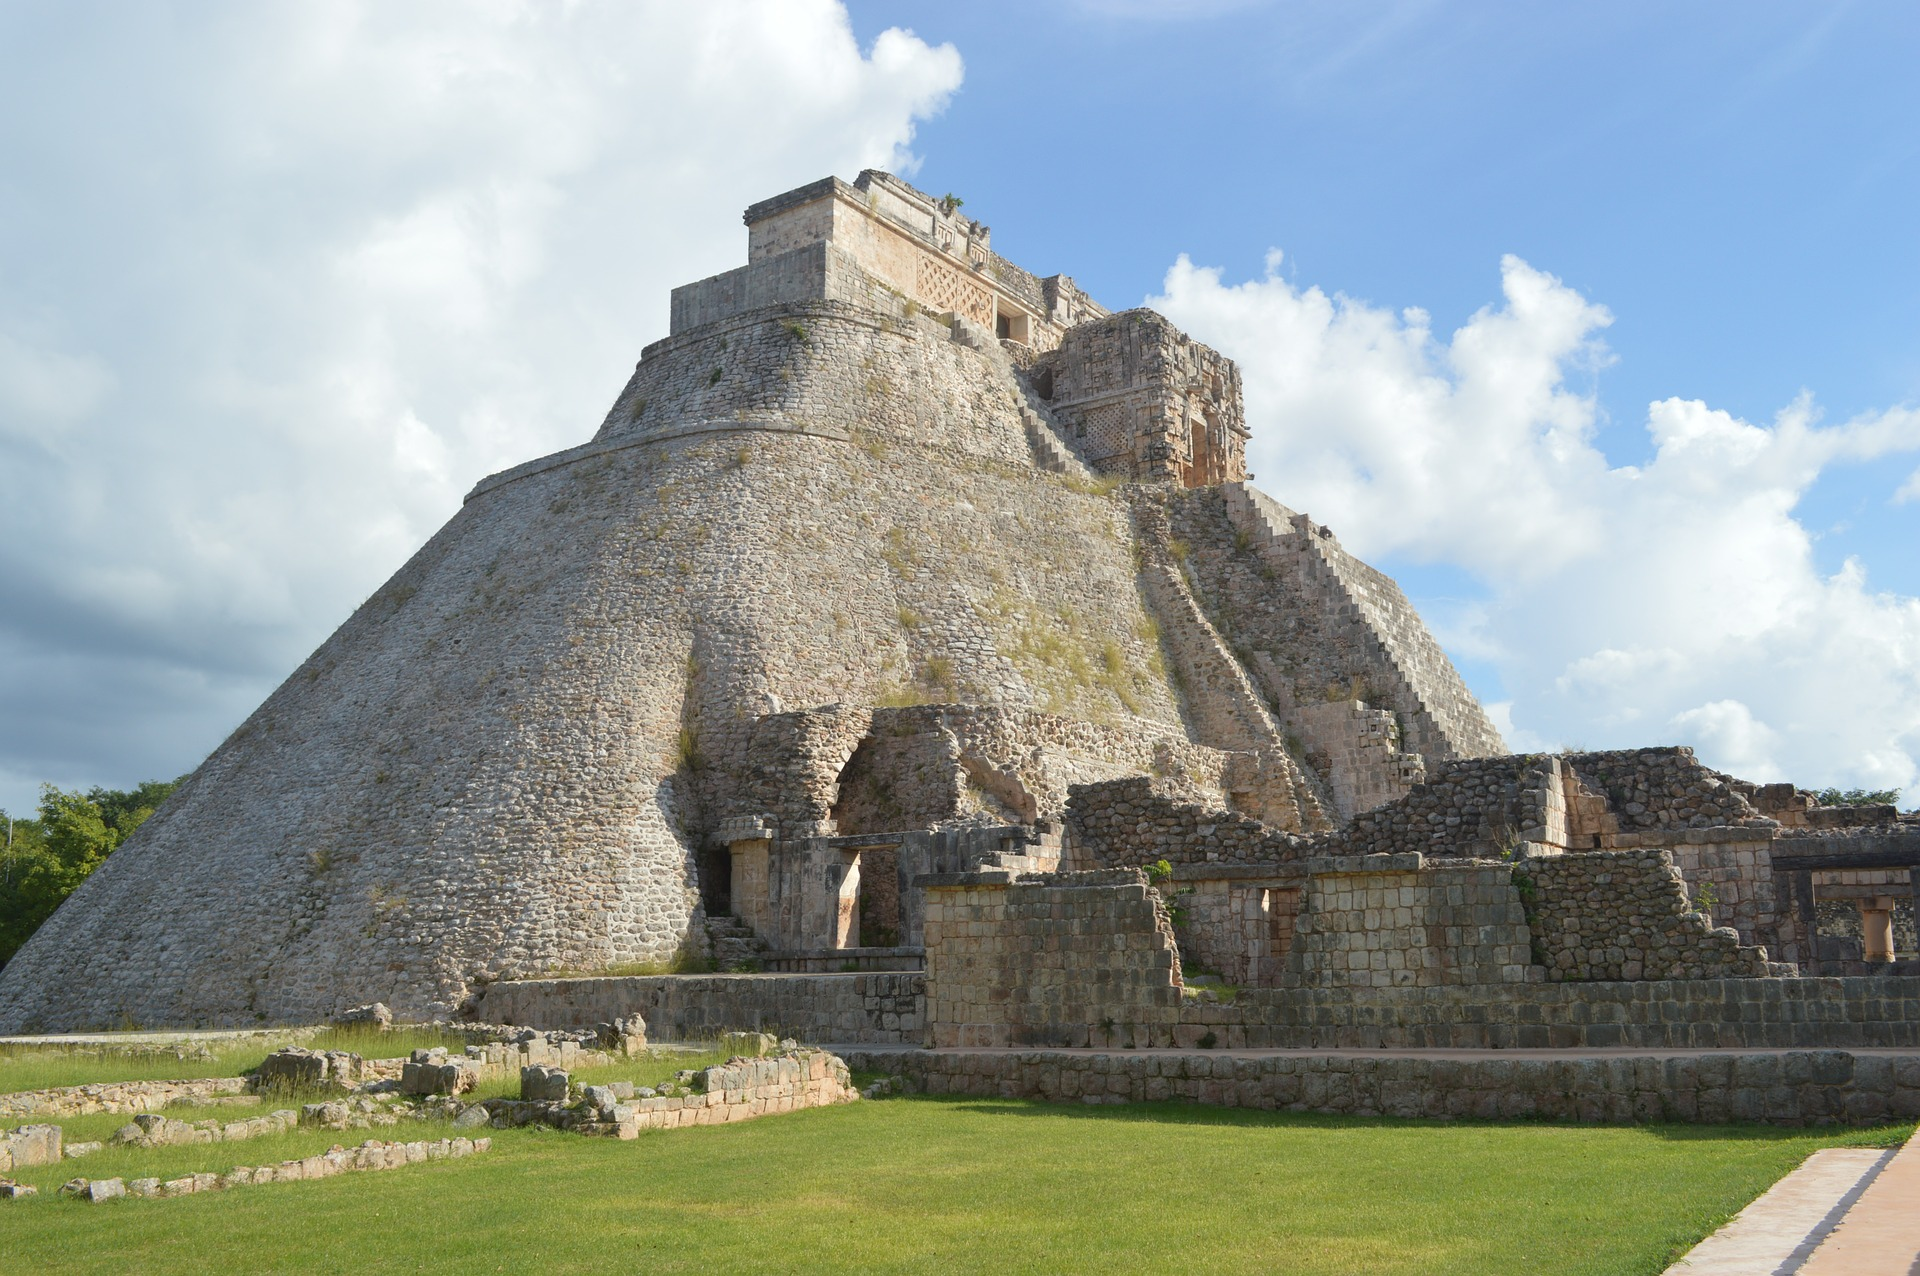 Image of Uxmal